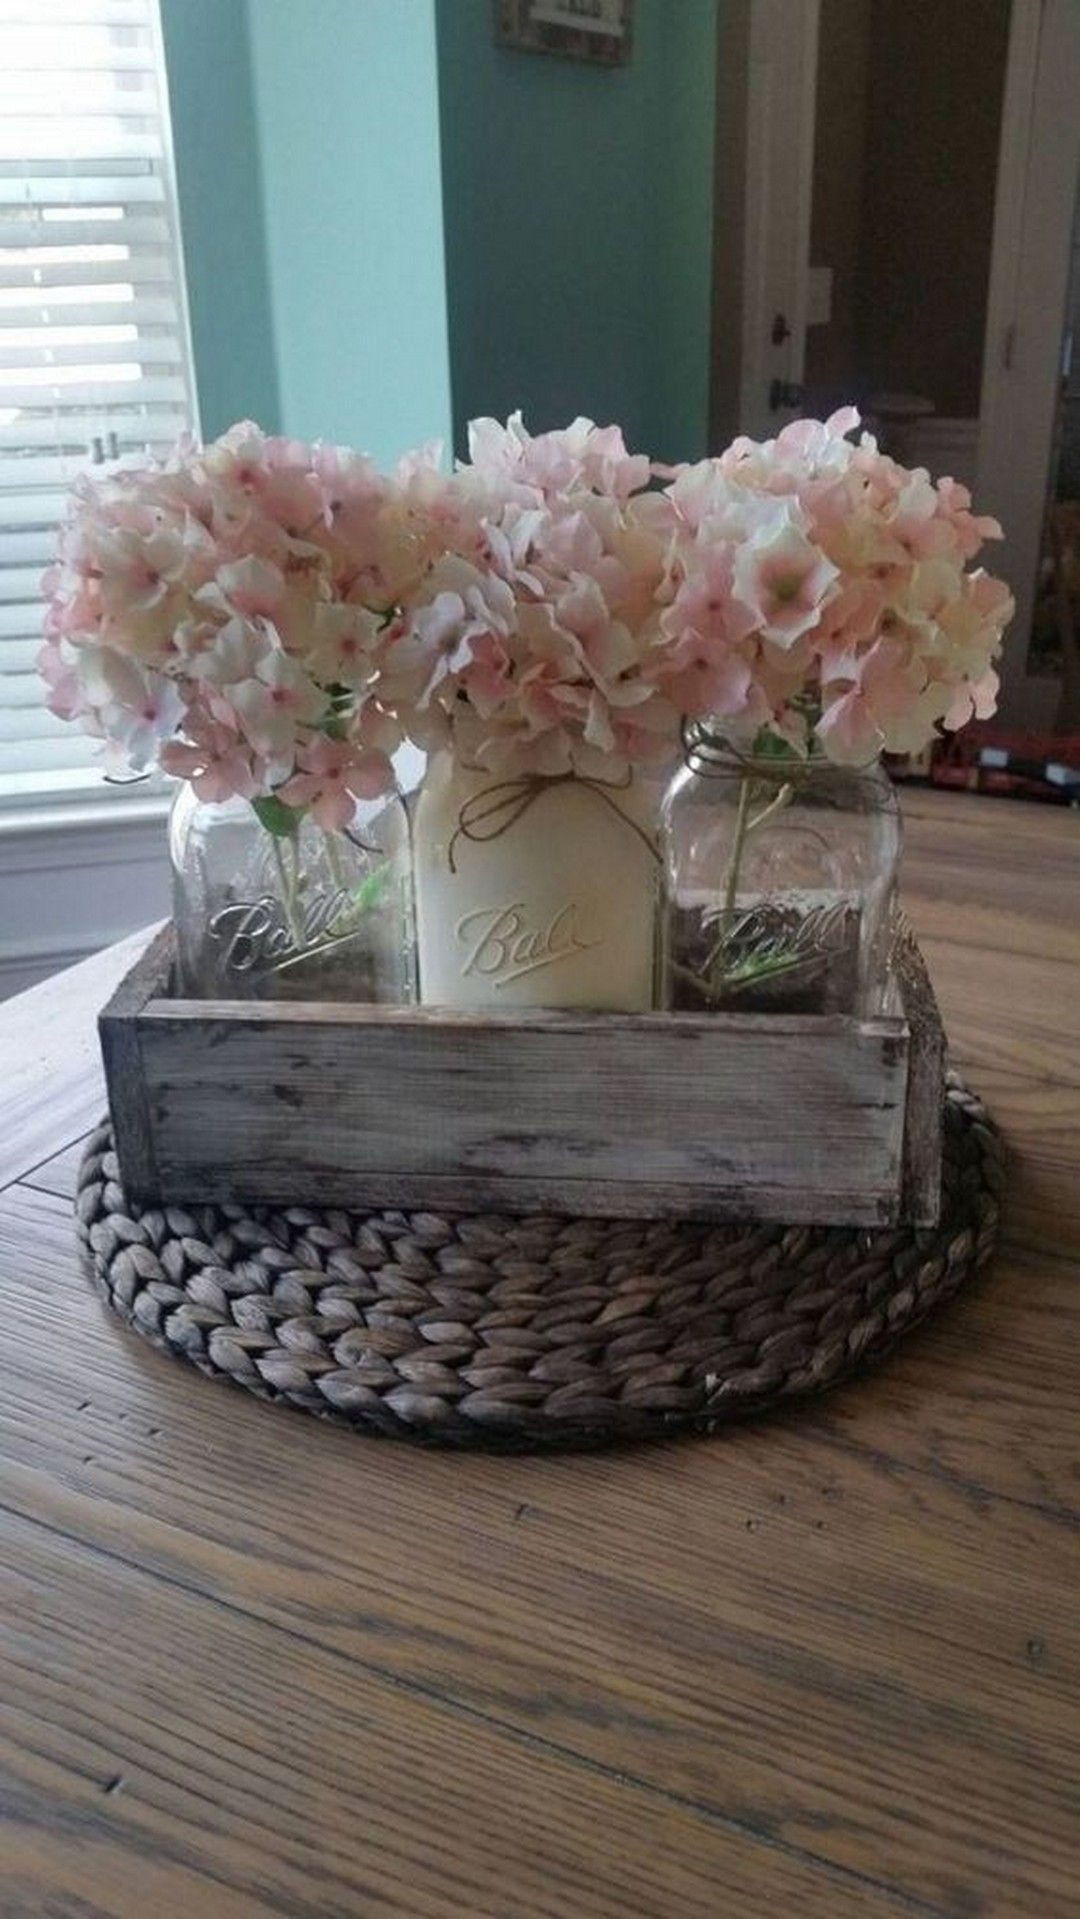 Complete your Home Design with These Beautiful Home Decoration Items #diyhomedecor